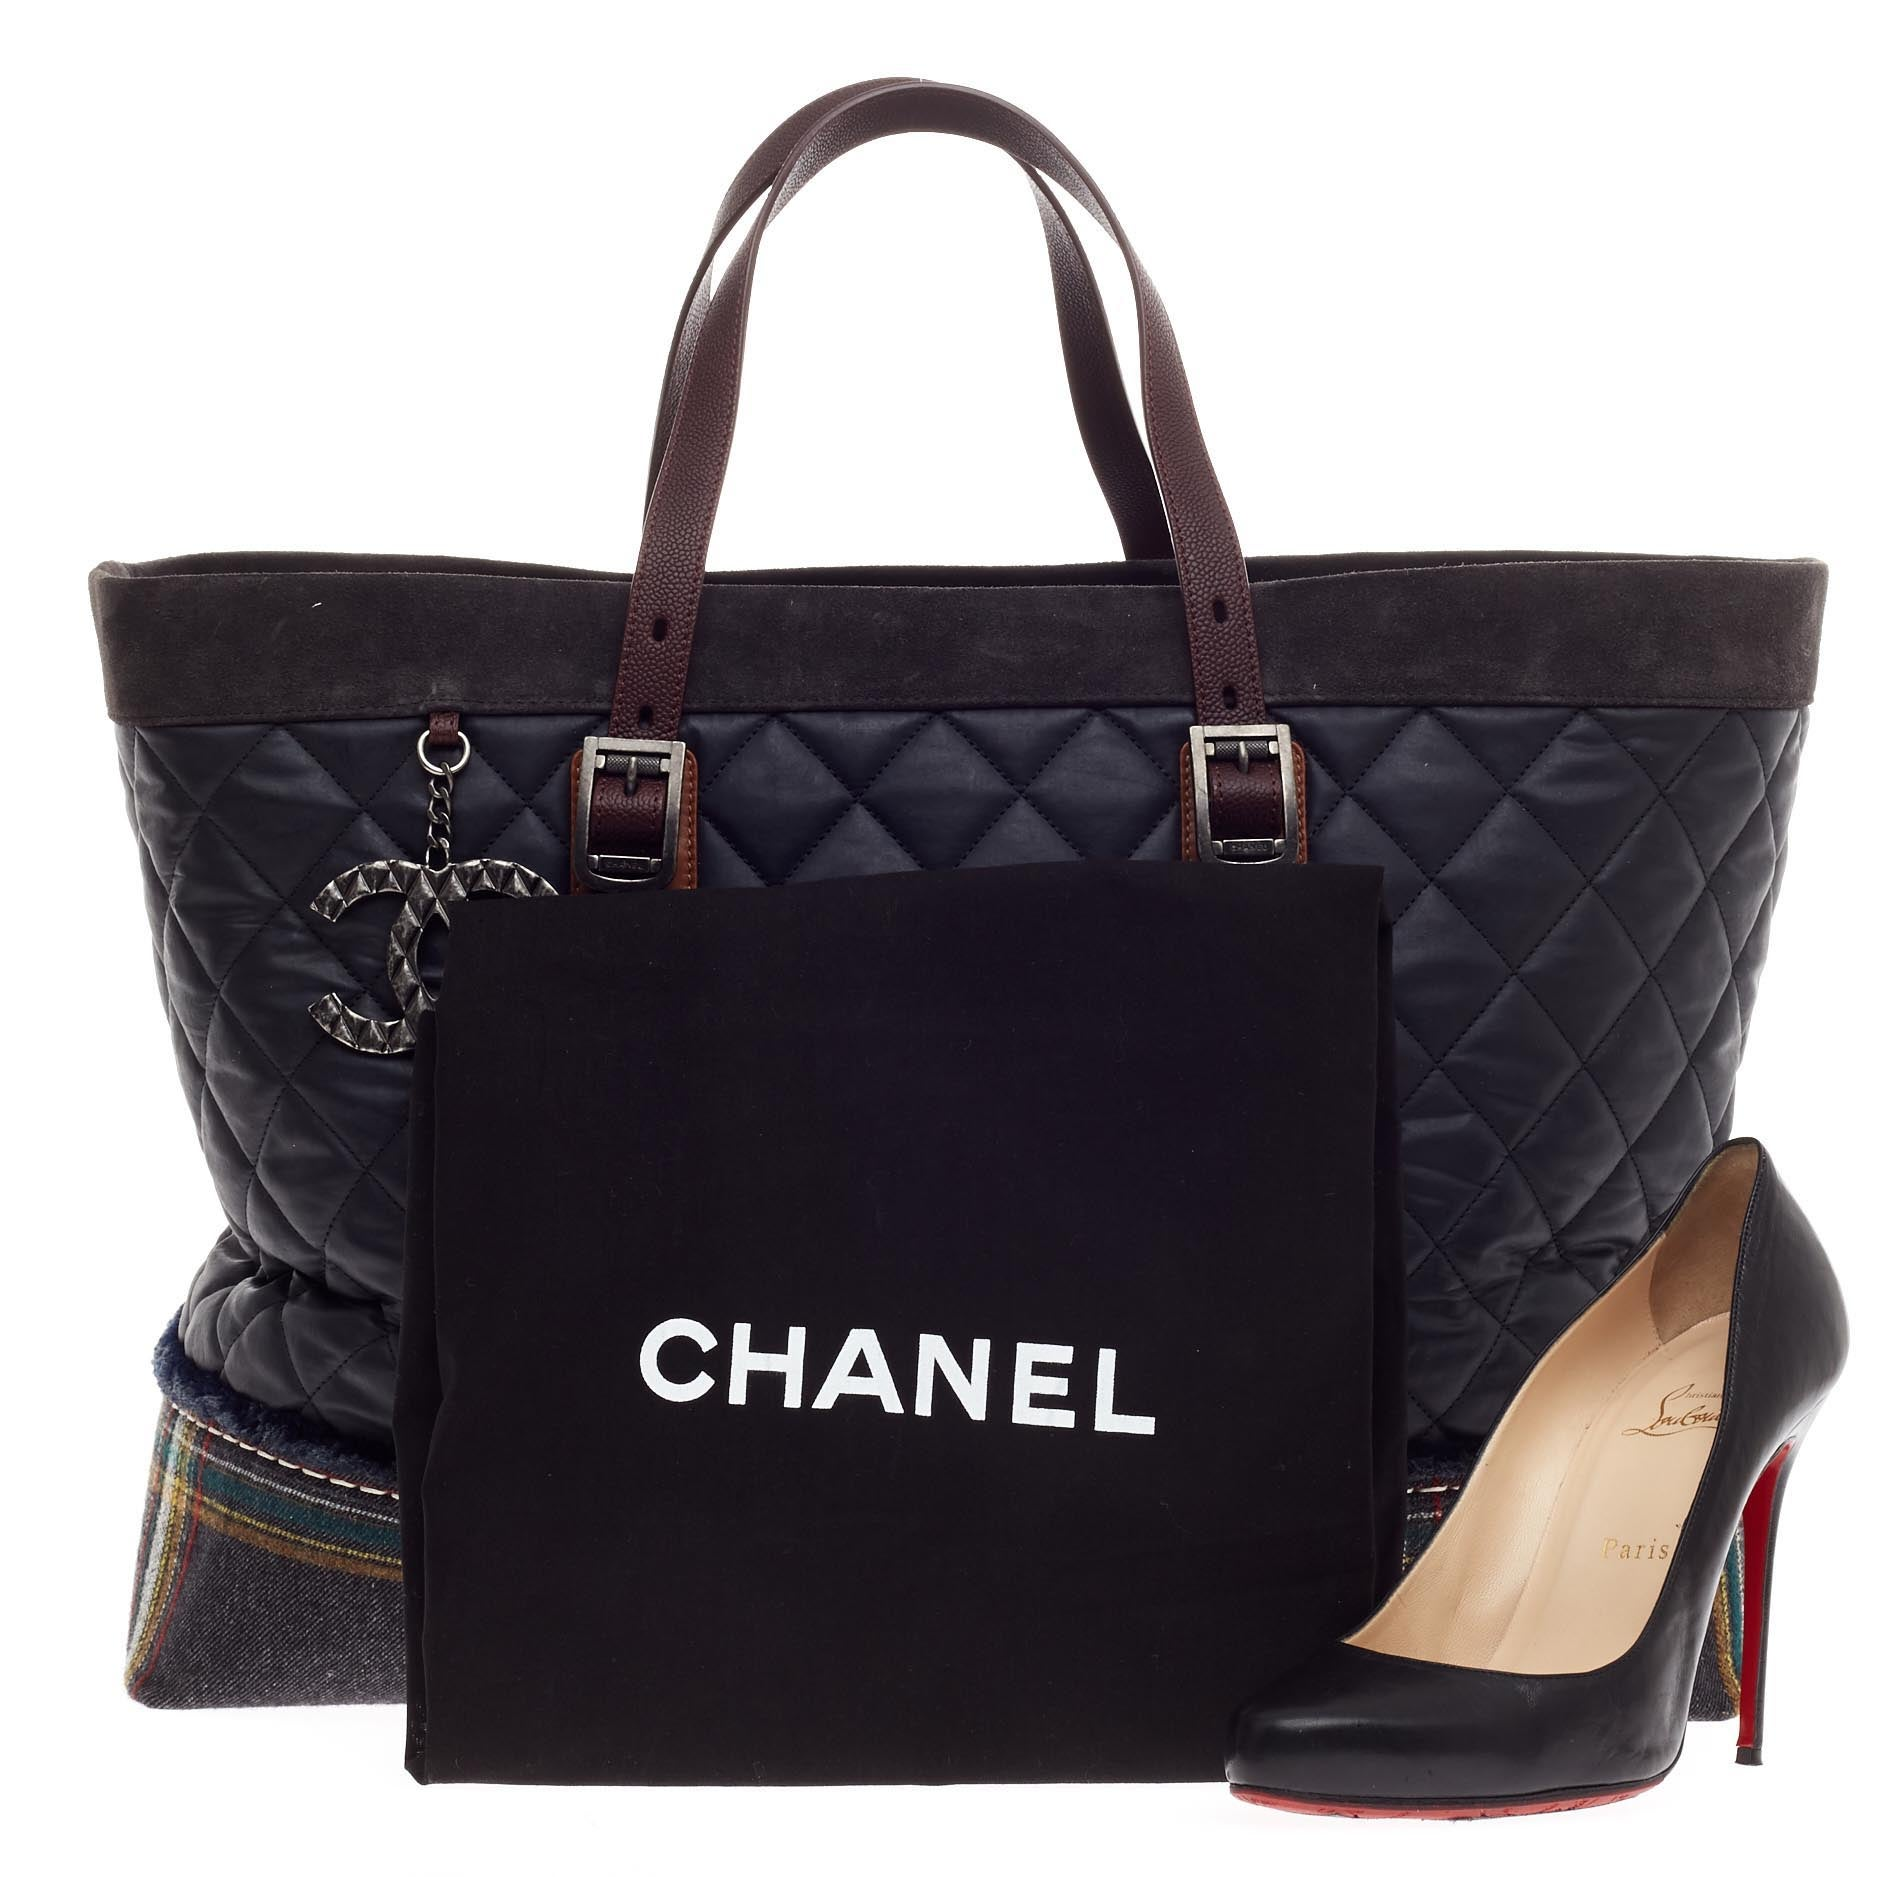 679015c98063 Chanel Paris-Edinburgh Tote Mixed Leather with Flannel at 1stdibs